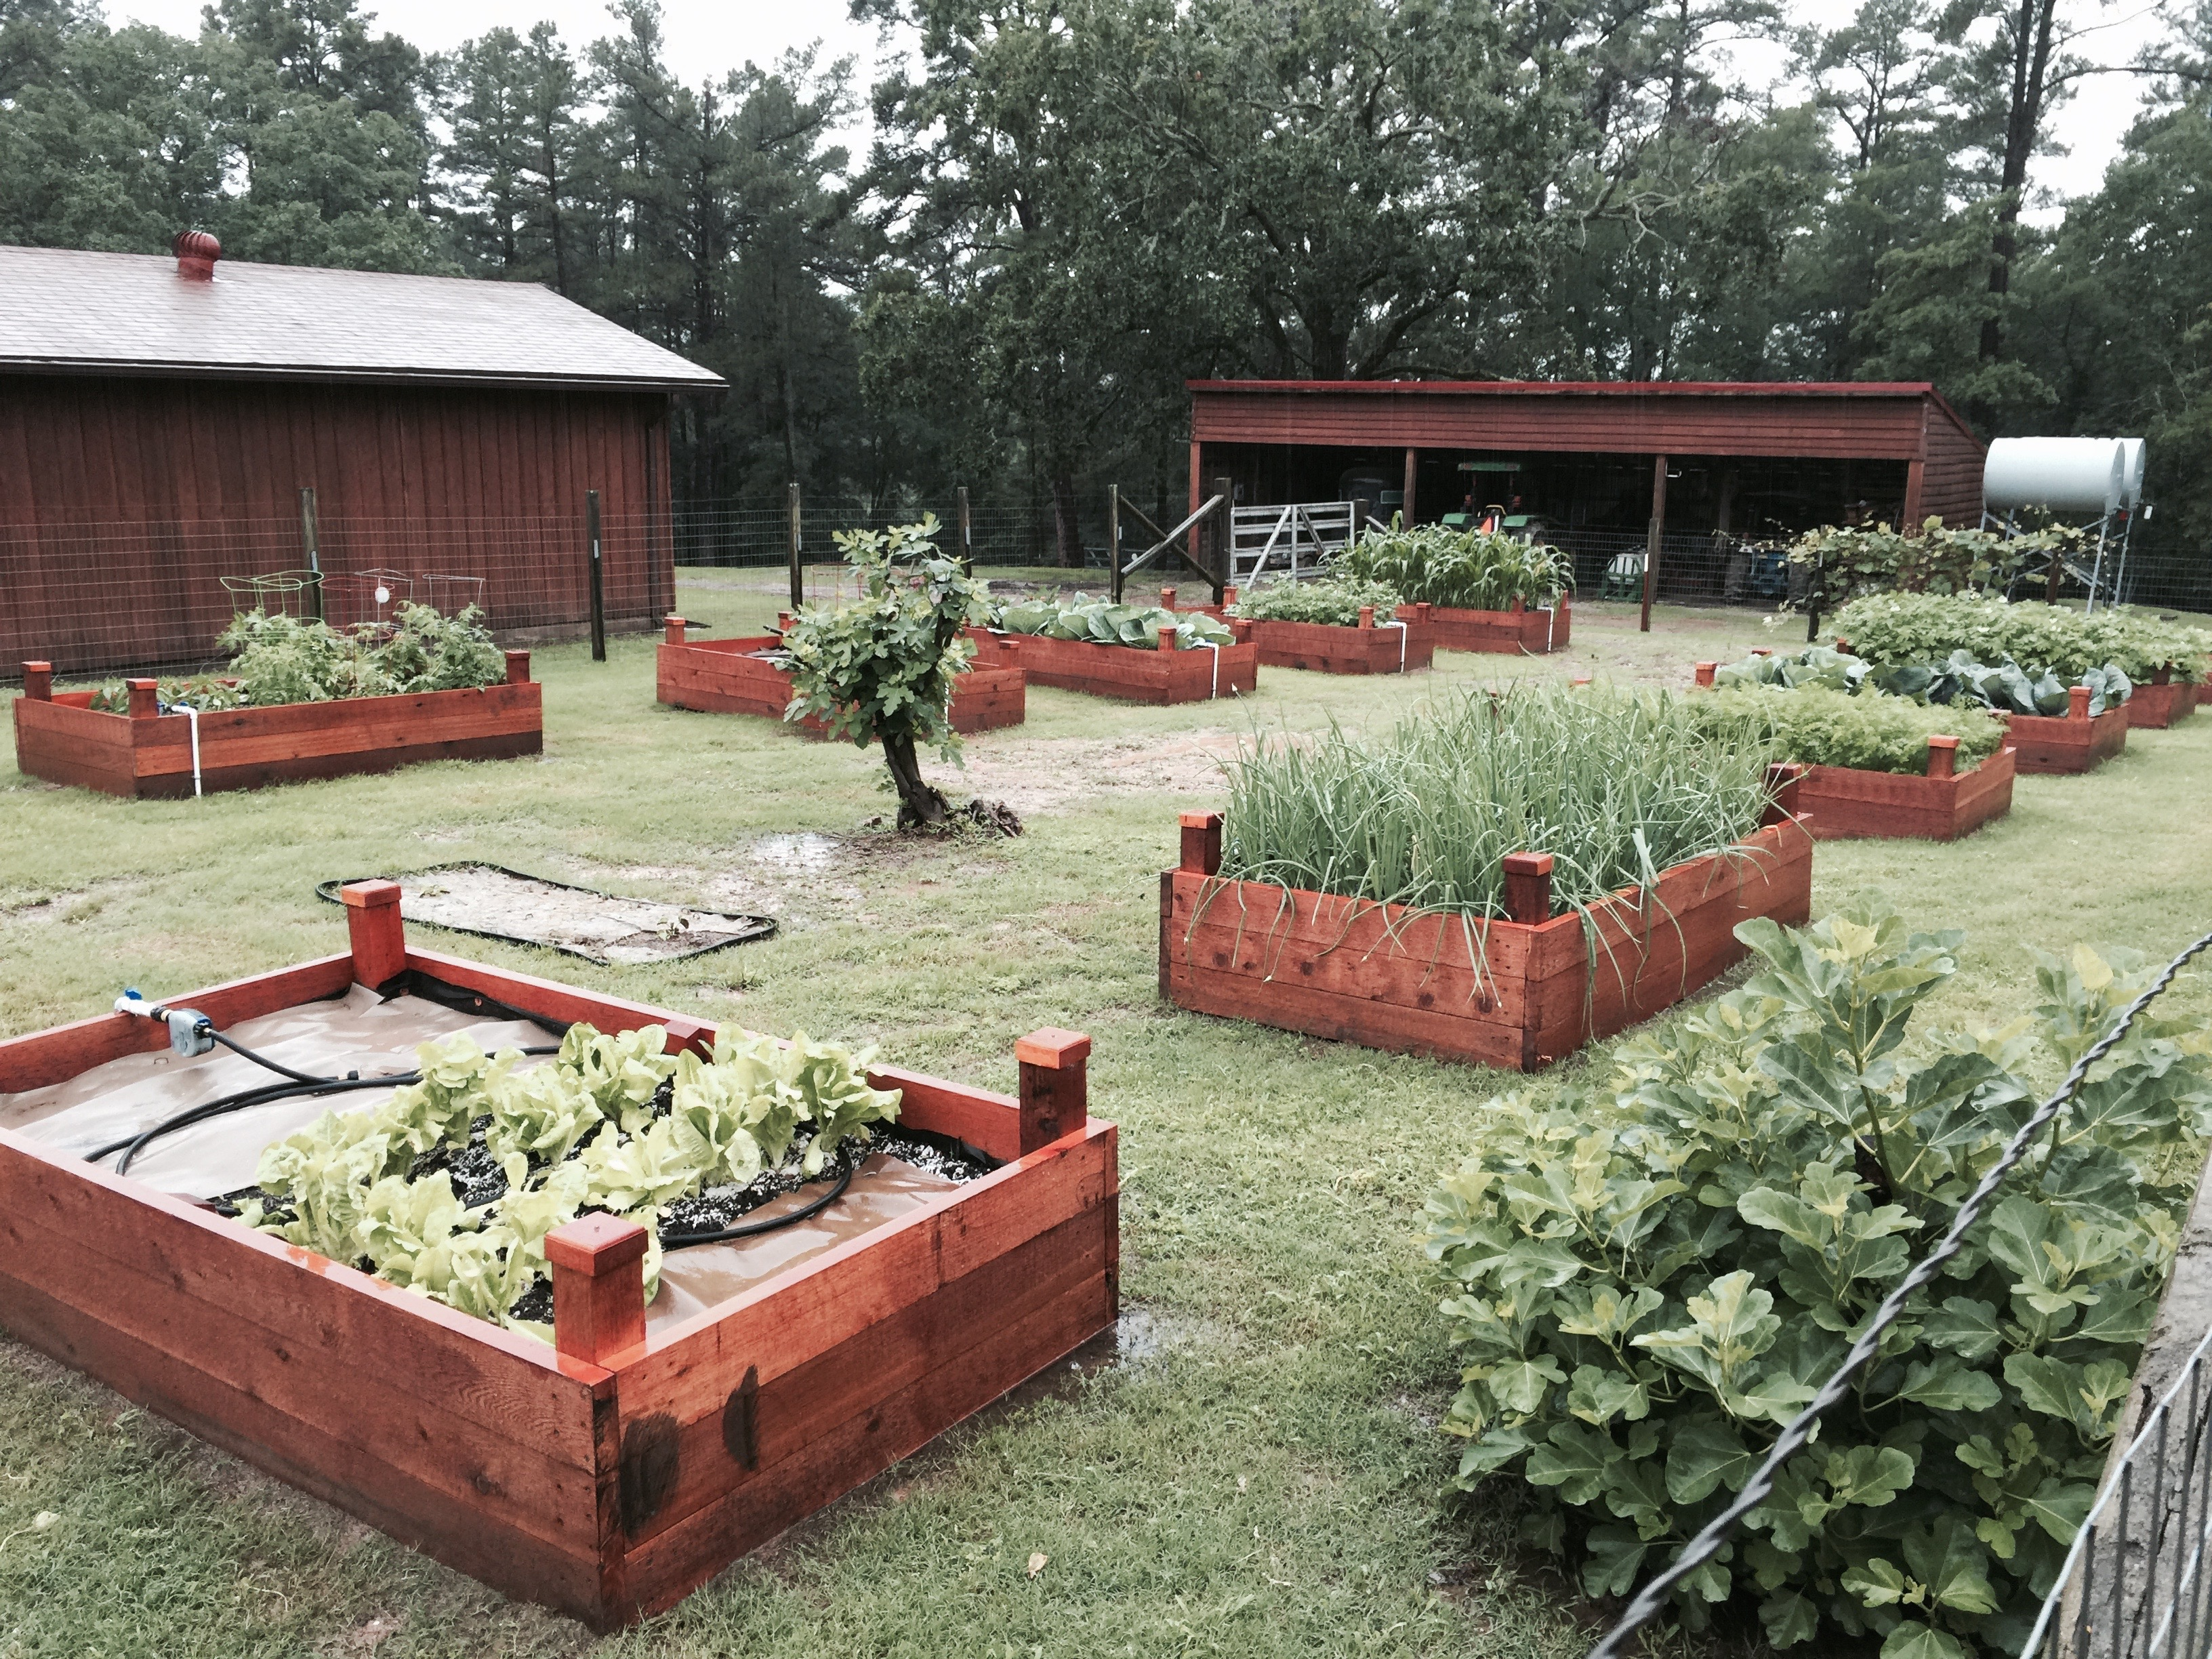 Raised bed garden with veggies